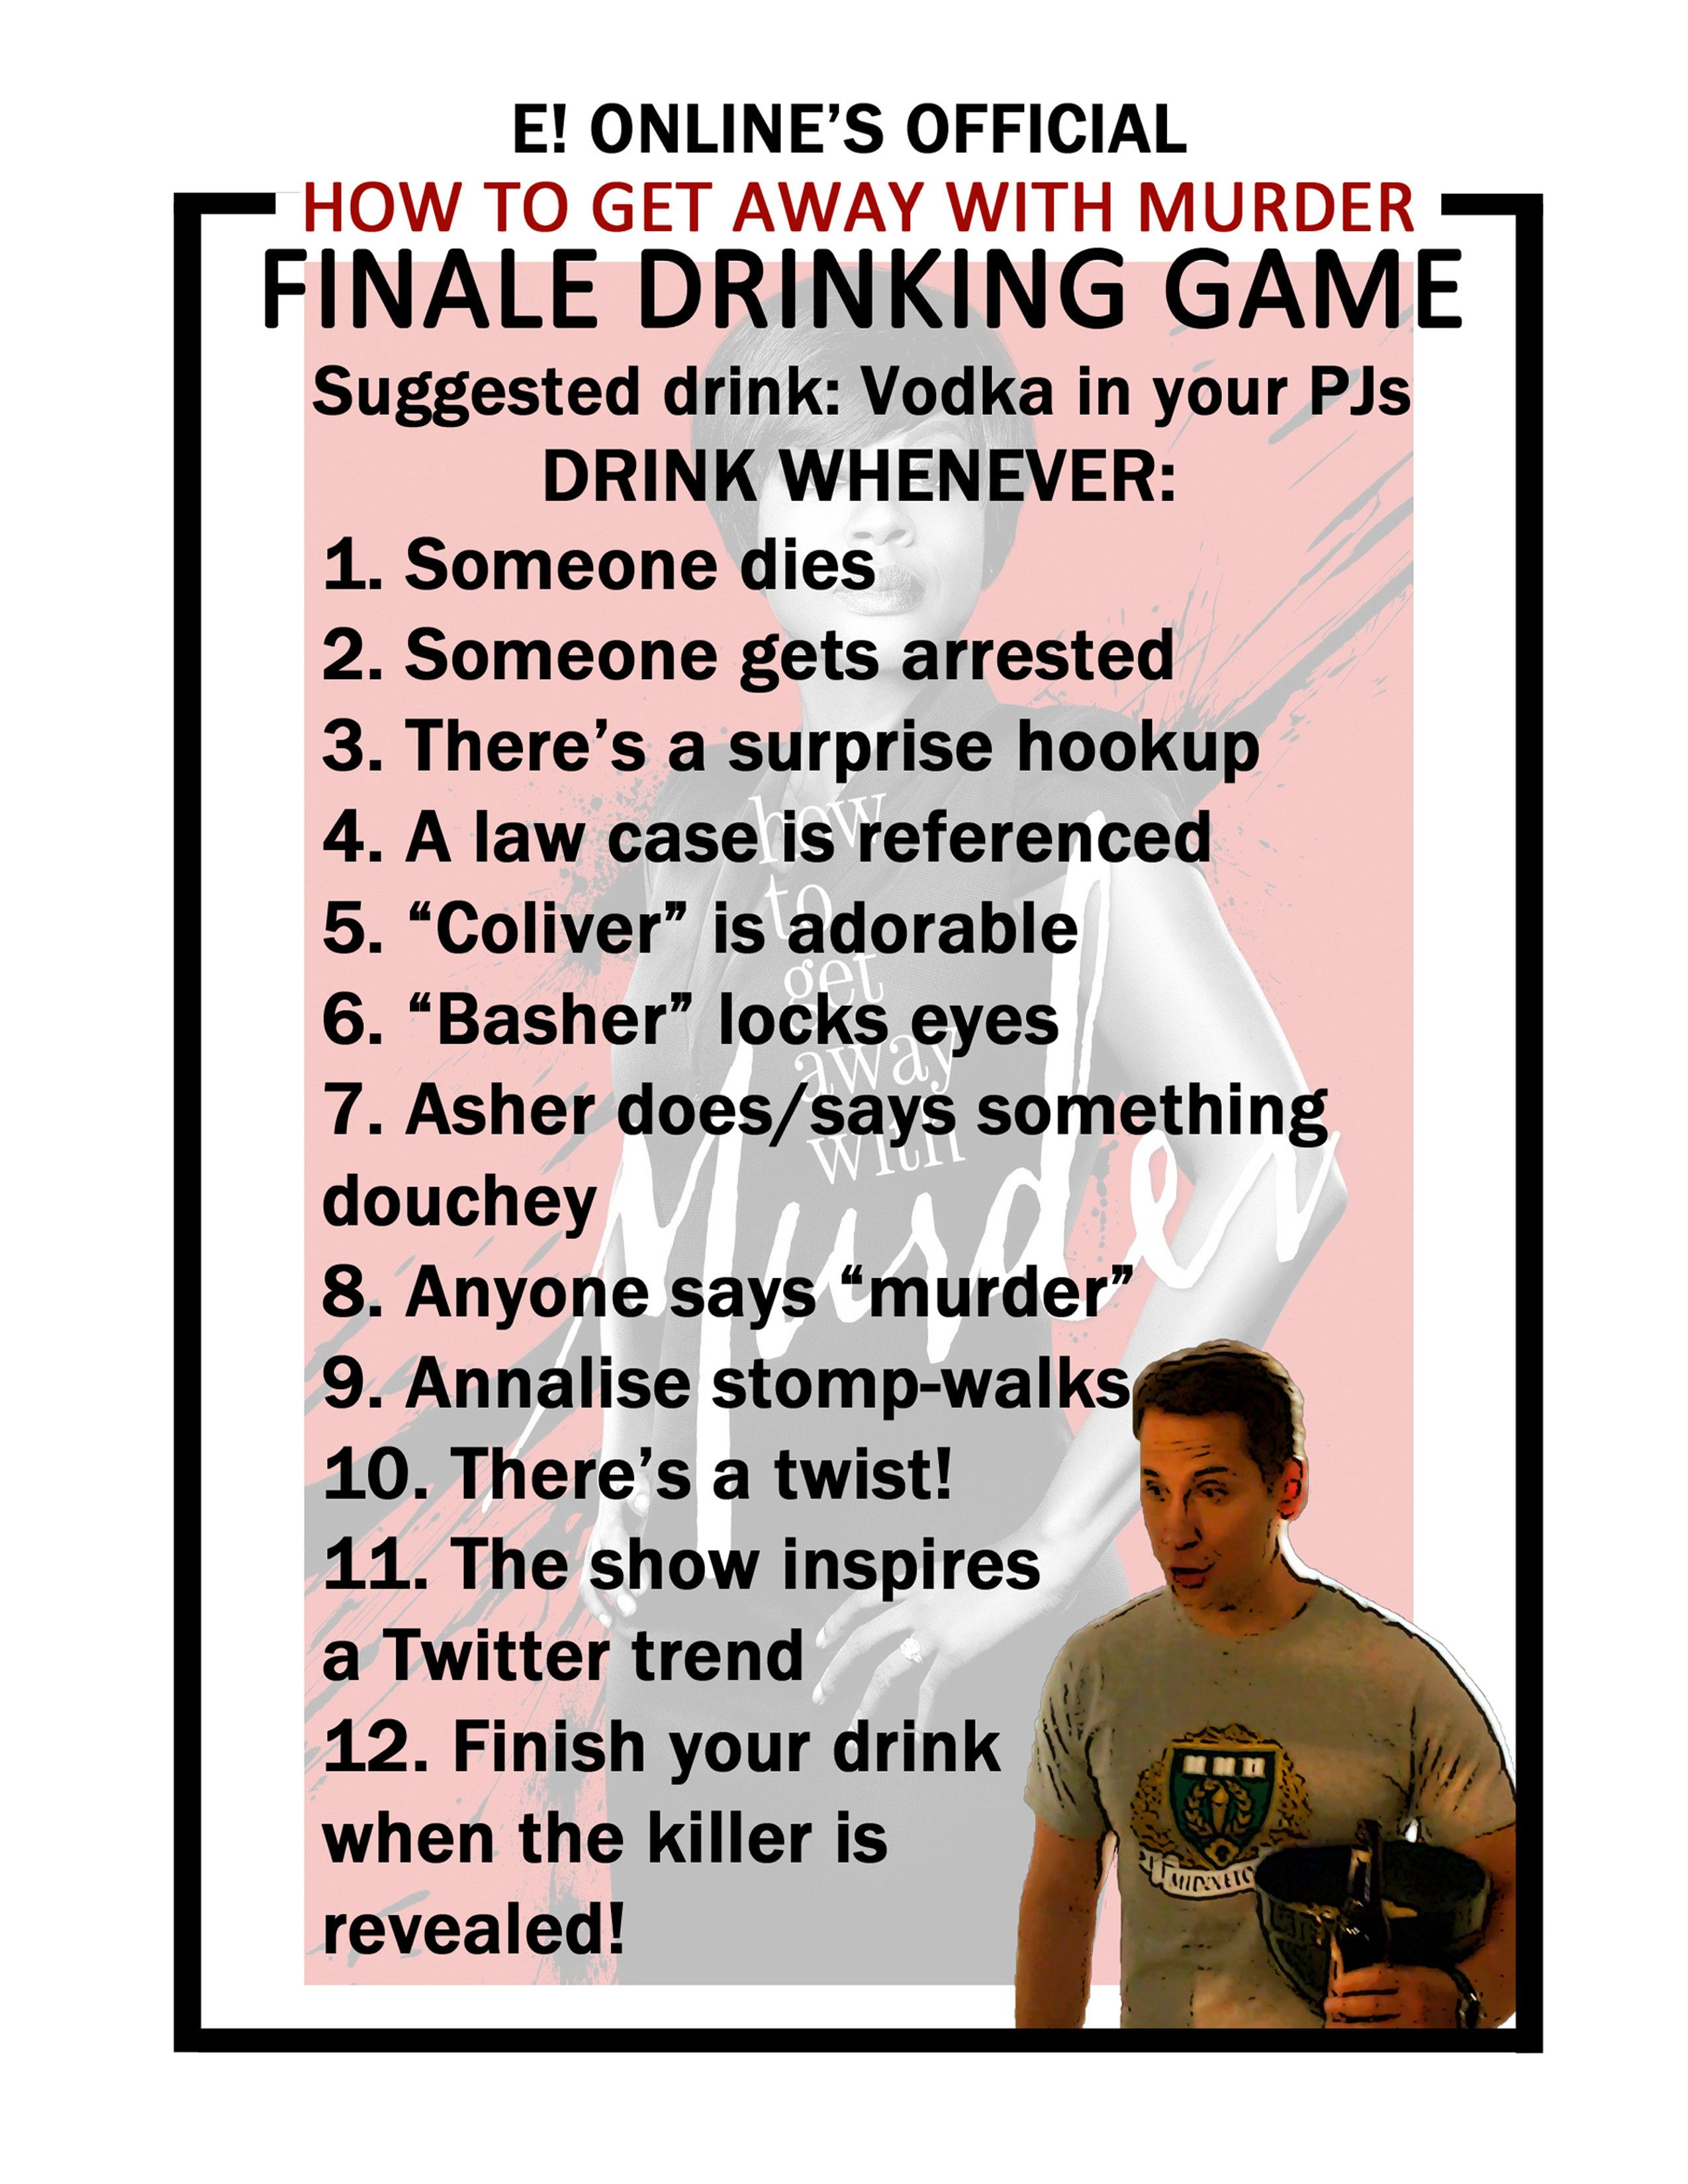 Play Our How to Get Away With Murder Finale Drinking Game!